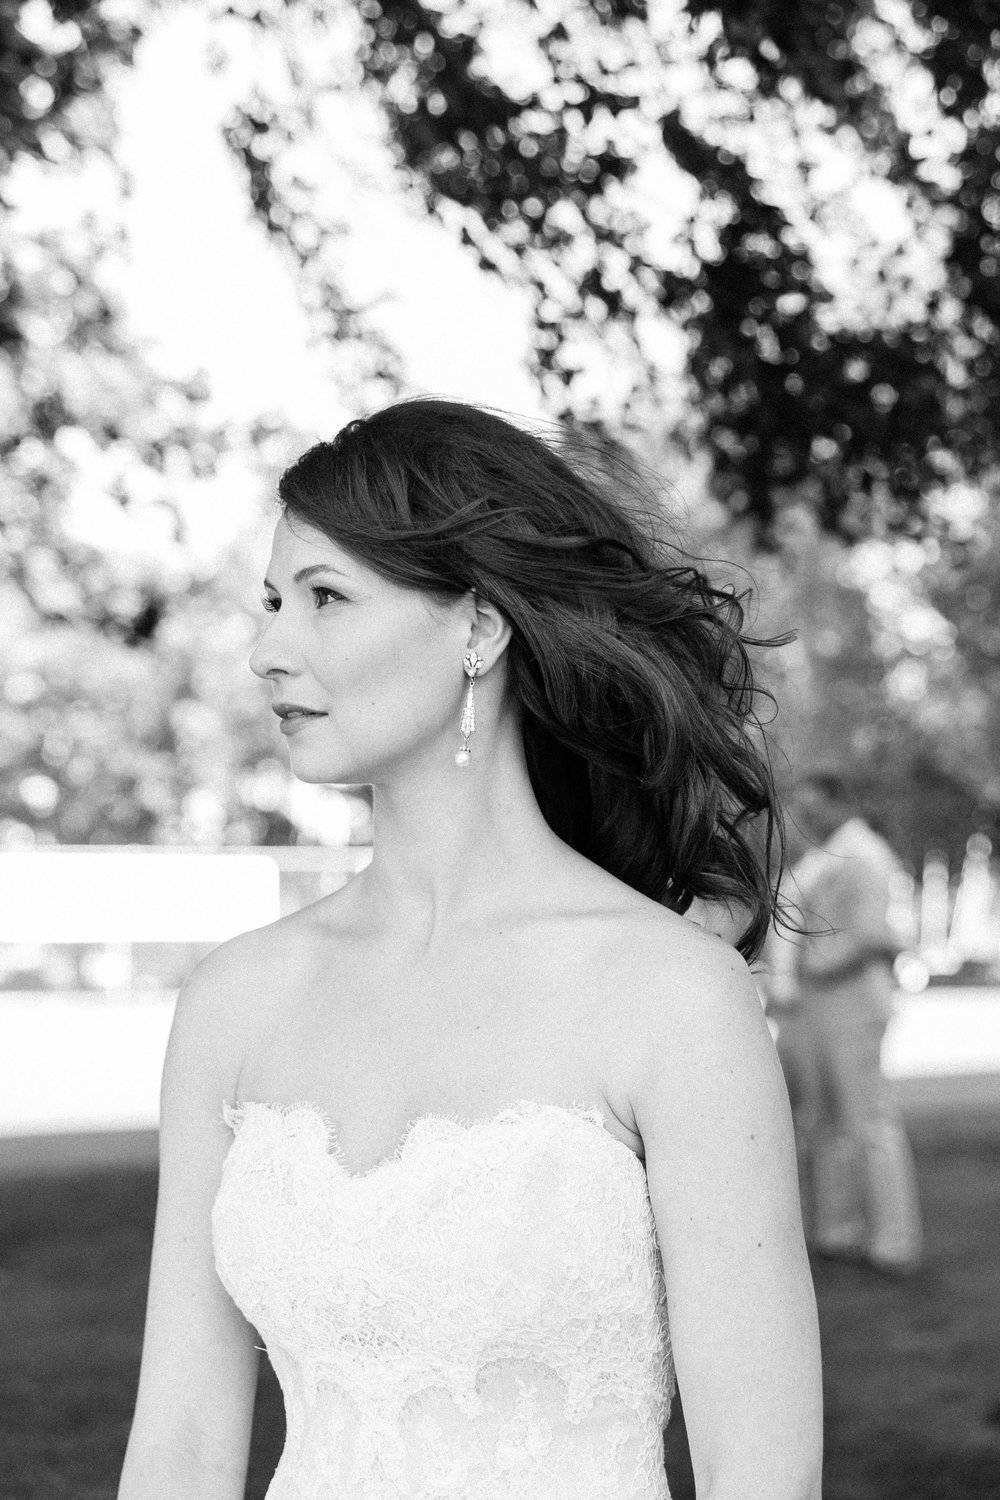 Black and white photos of a bride outside